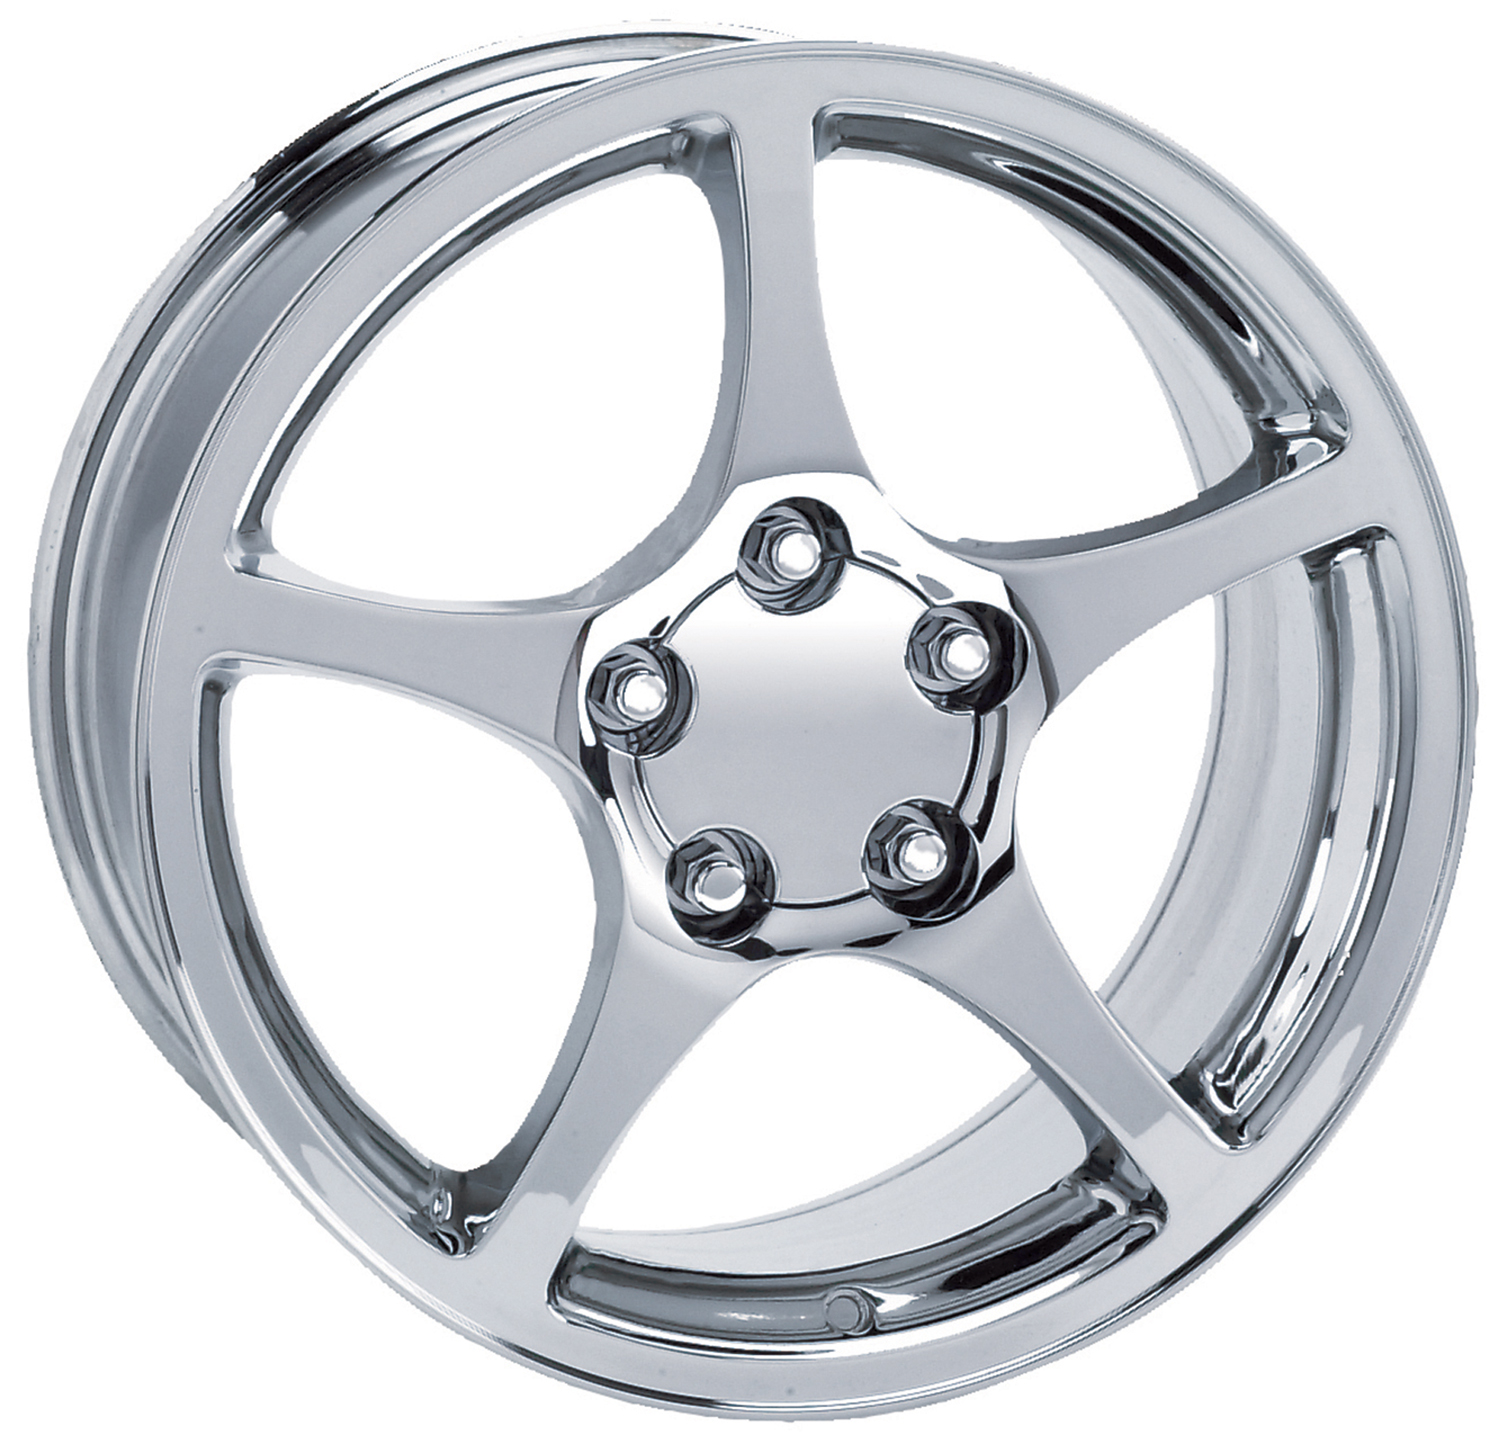 Chevrolet Corvette 1997-2000 17x9.5 5x4.75 +53 - 2000 Style Wheel - Chrome With Cap